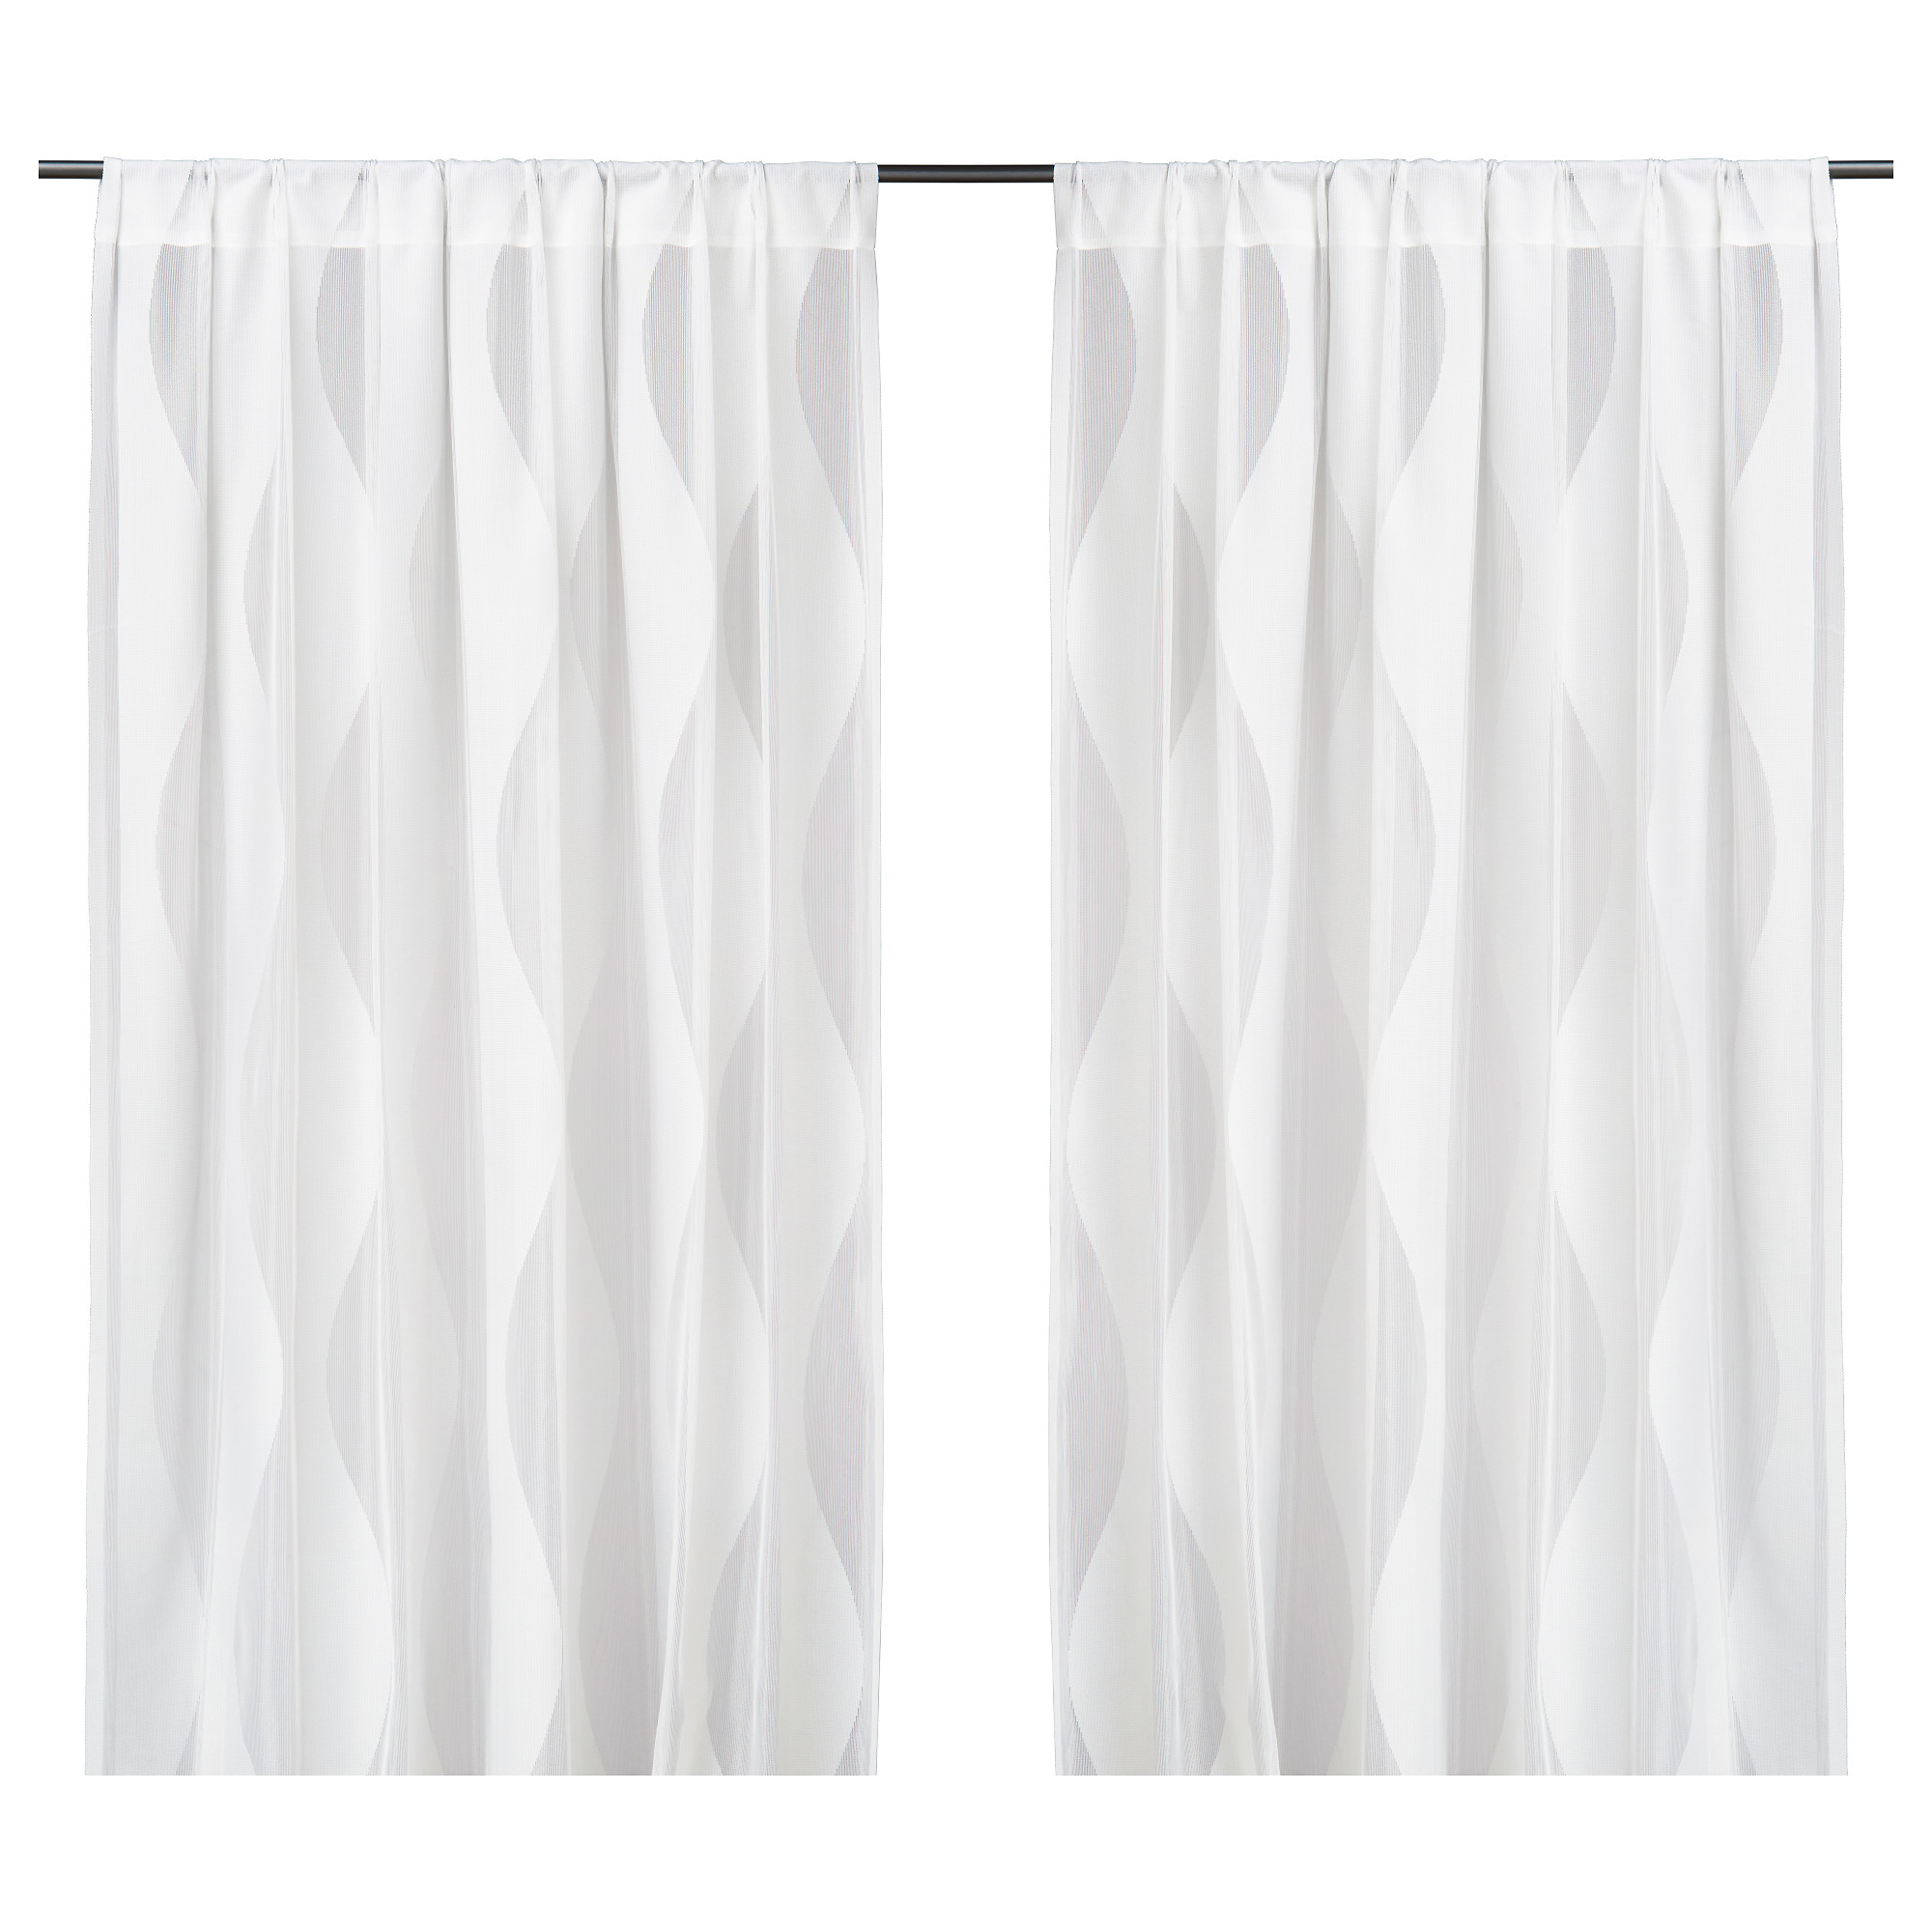 White window curtains - Murruta Lace Curtains 1 Pair White Length 98 Width 57